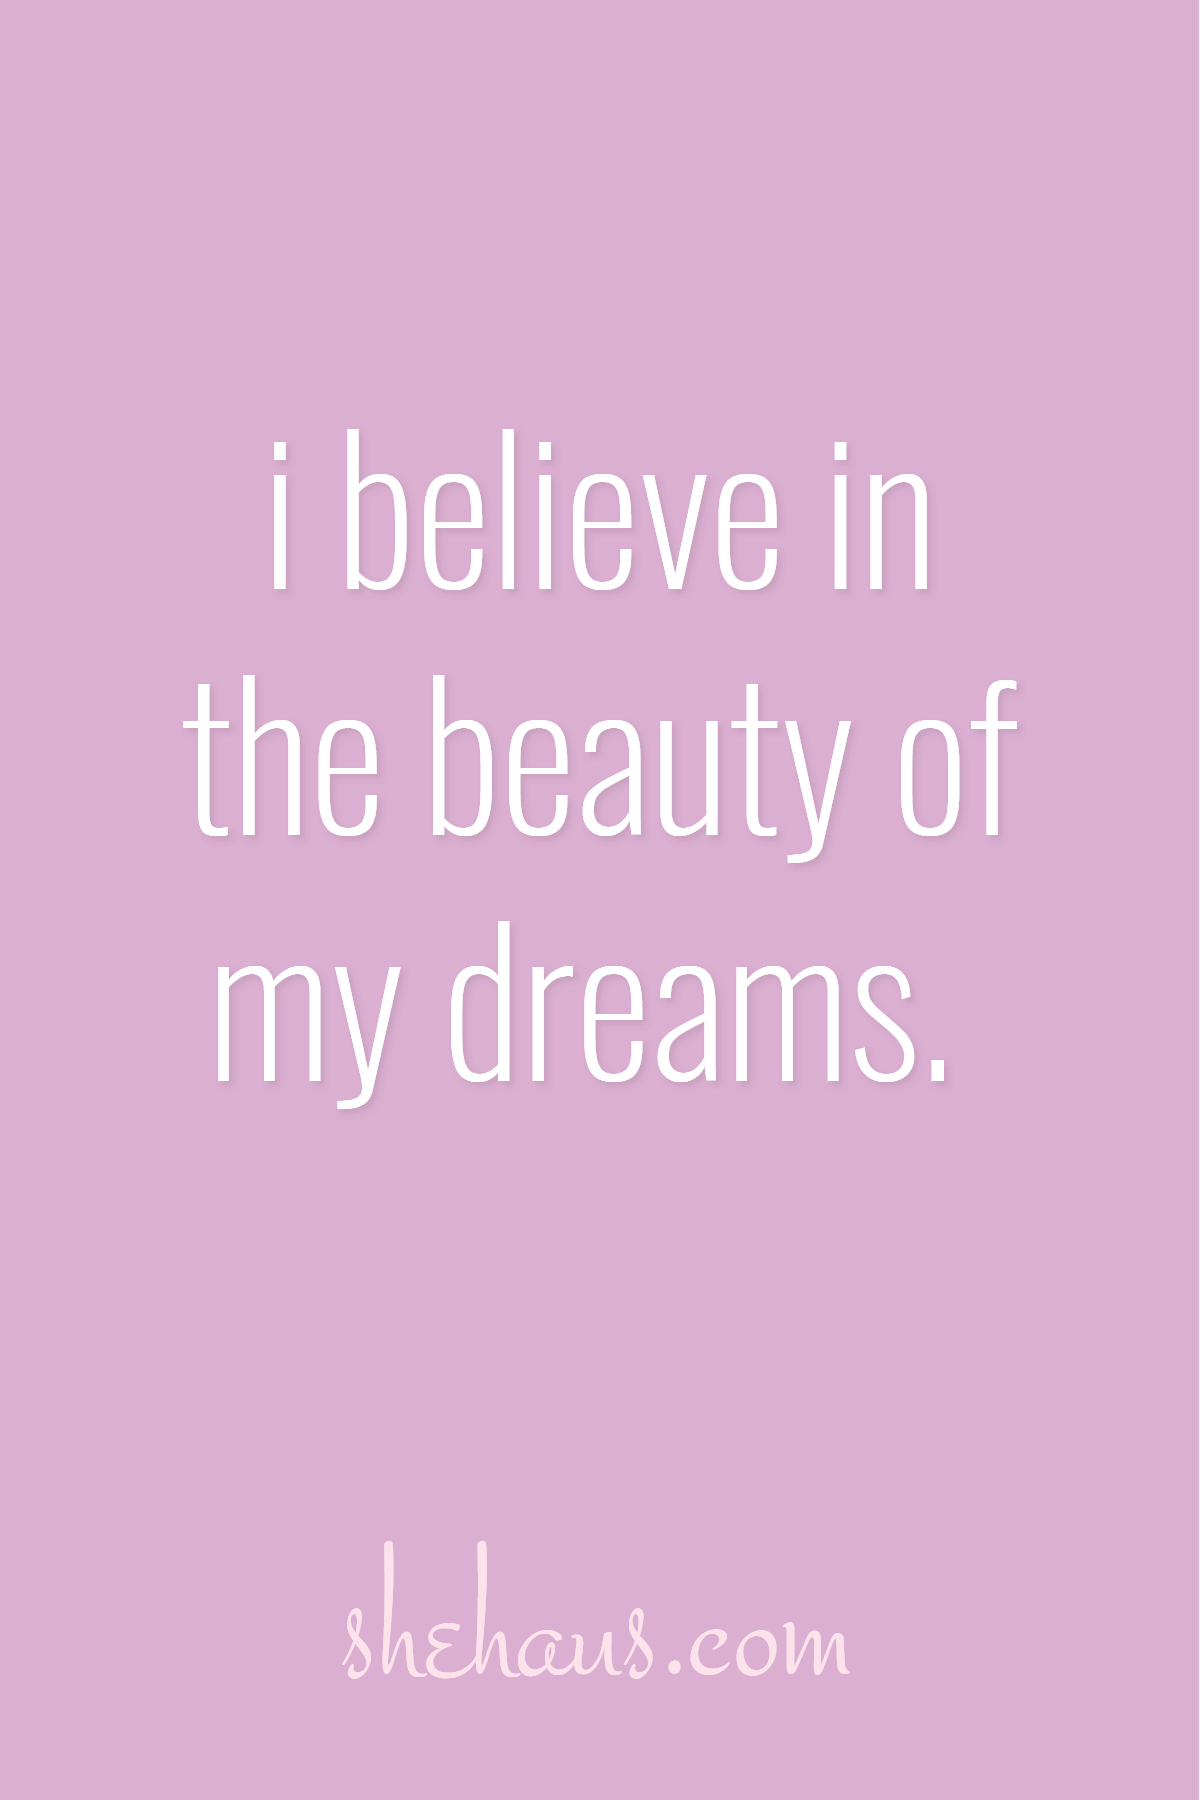 1 On 1 Coaching Shehaus My Dreams Quotes Affirmation Quotes Dream Quotes